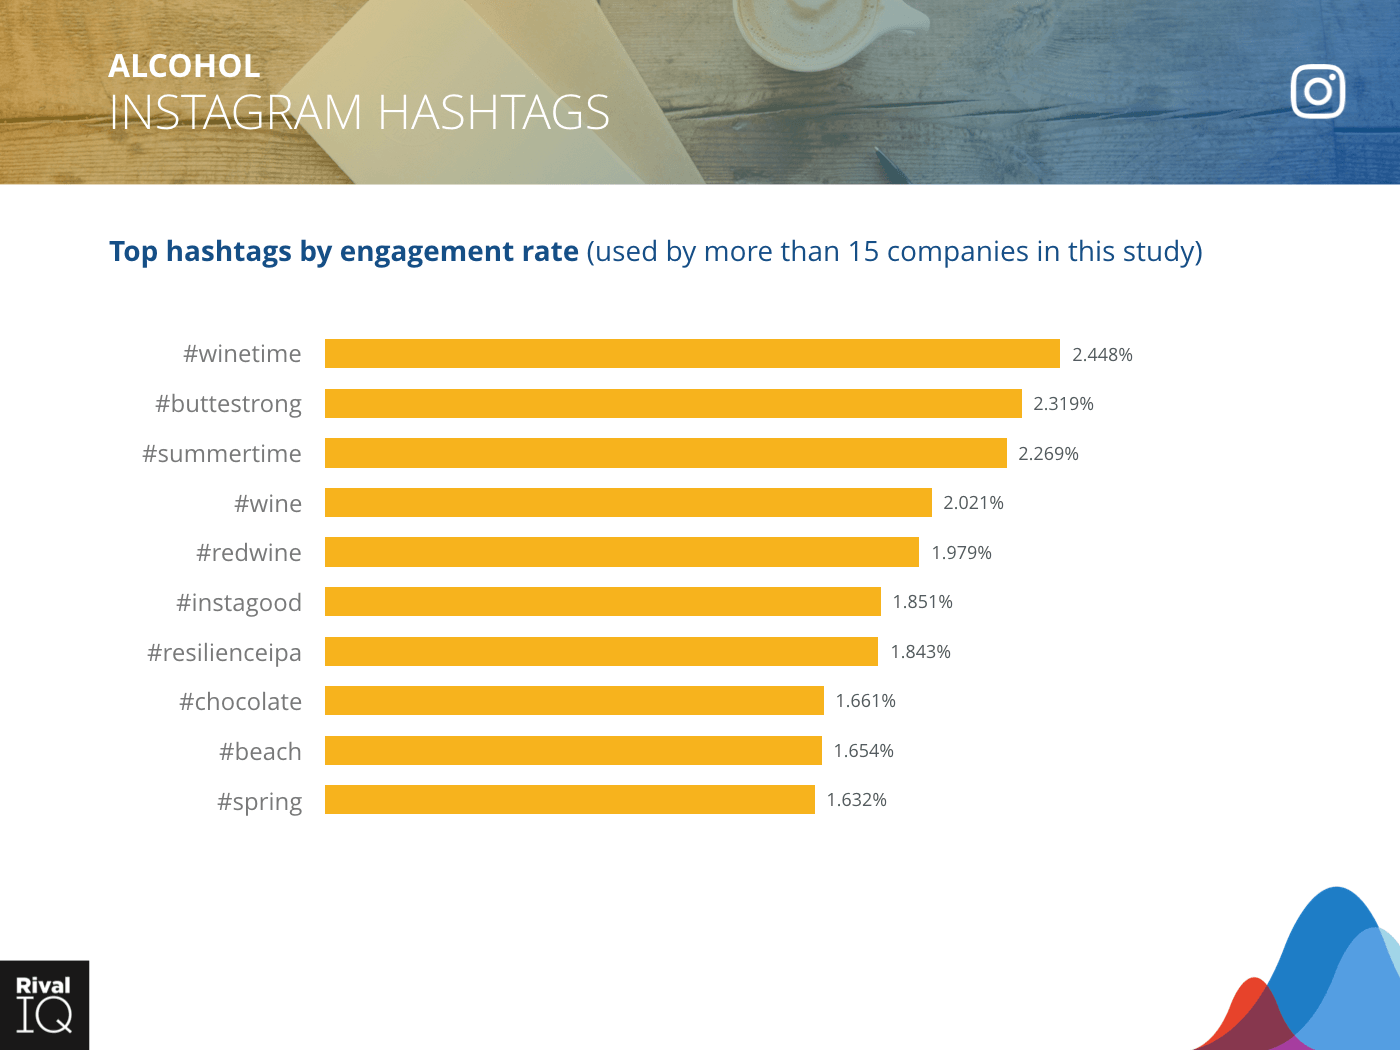 Alcohol Industry: bar graph, top hashtags by engagement rate on Instagram